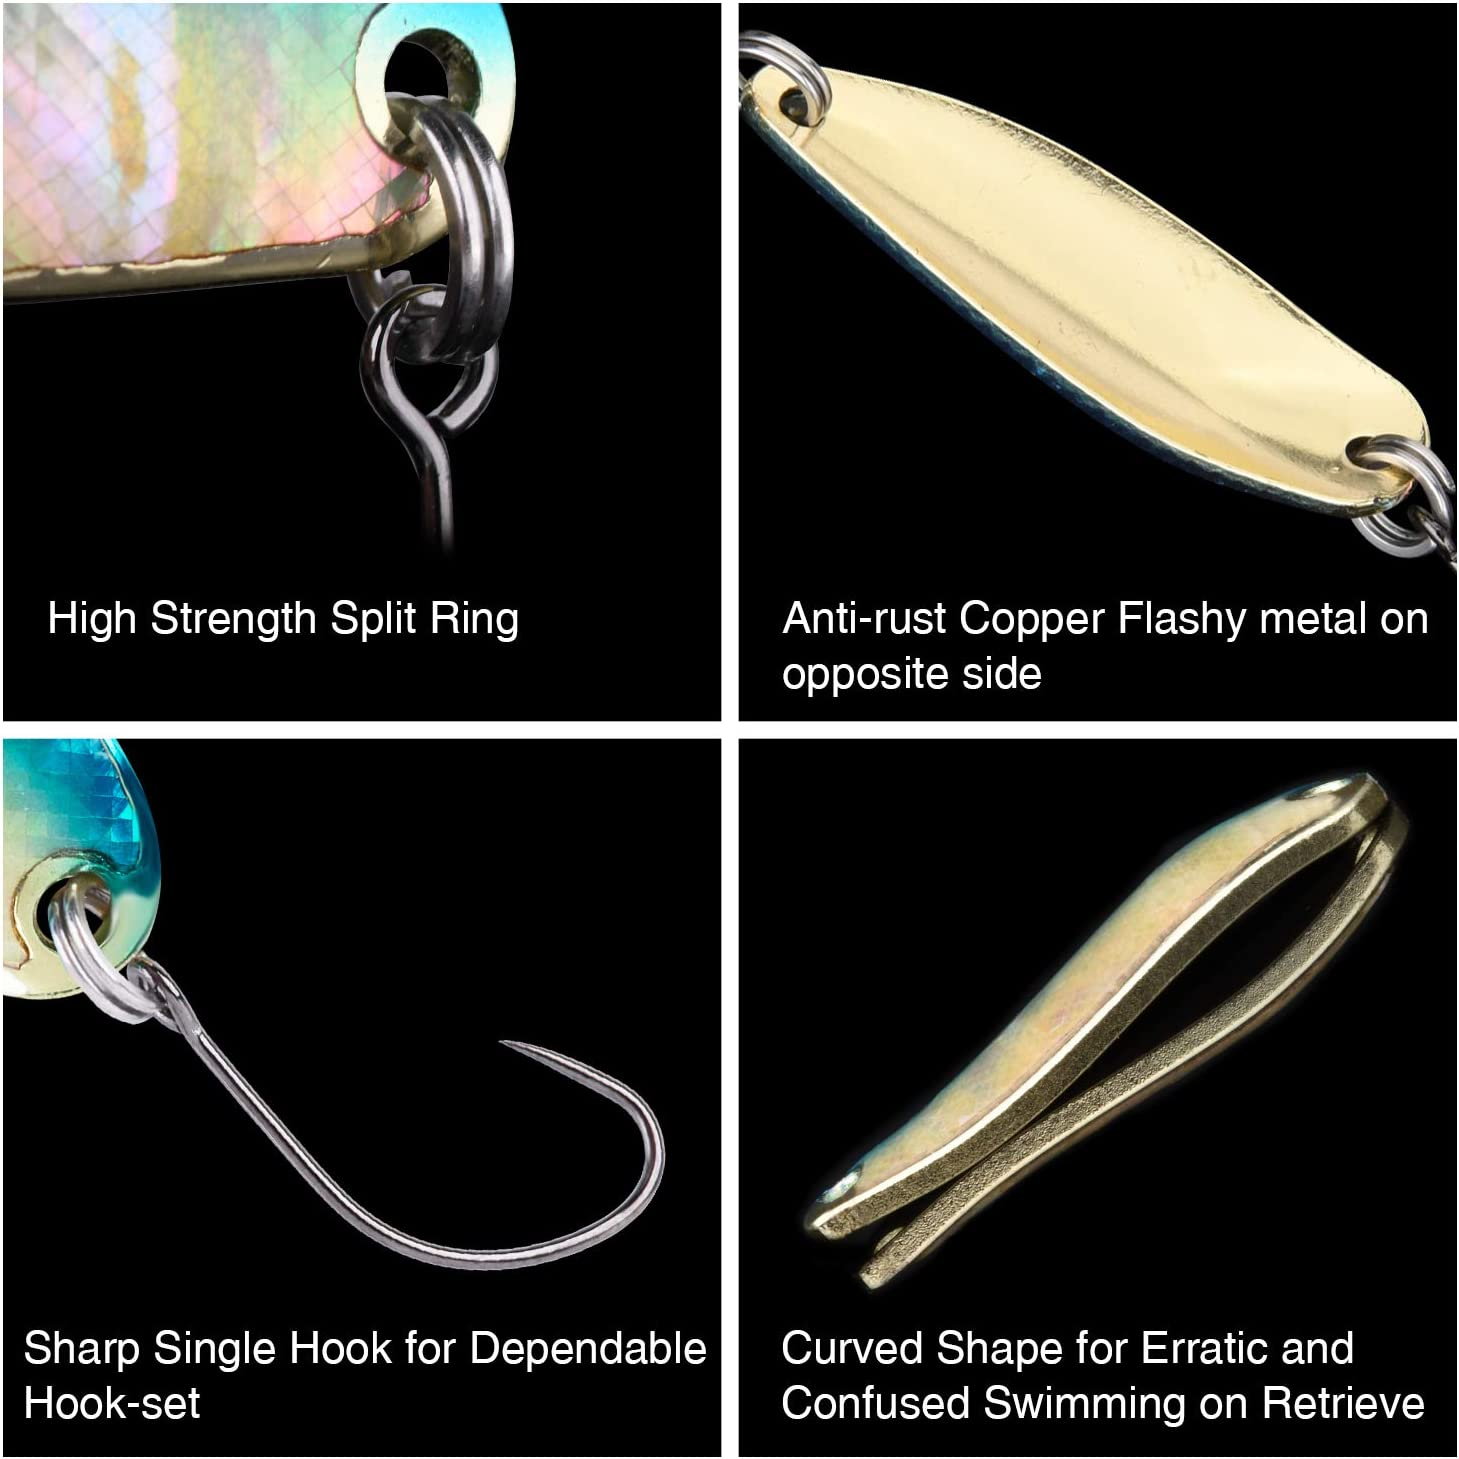 Catfish,Panfish Bluegill Crappie Bass Goture Reflective Ice Fishing Jigs Ice Fishing Lure with Sharp Hook for Trout Walleye